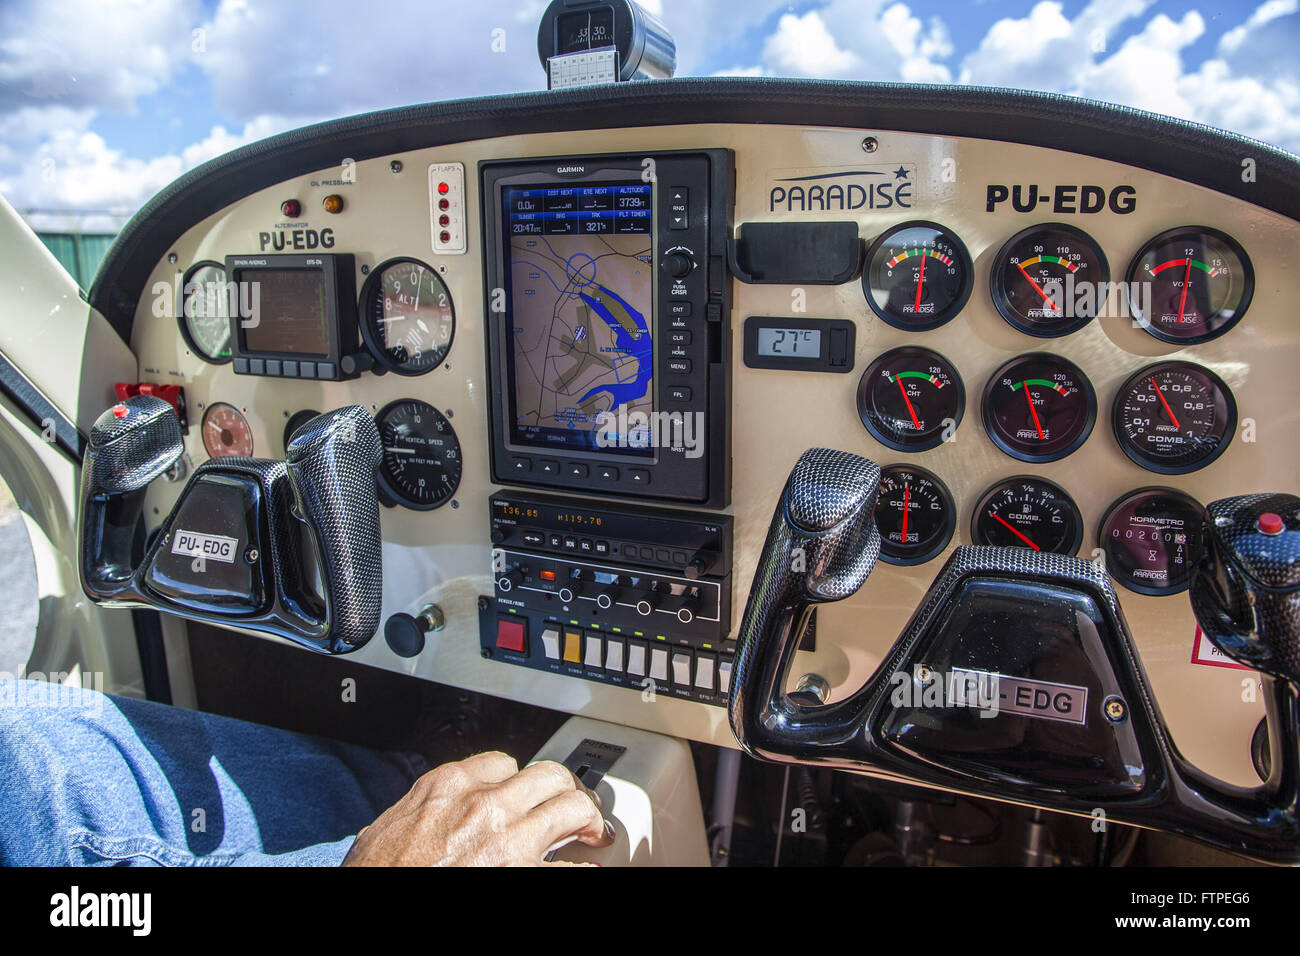 Pilot checking panel before takeoff - Stock Image